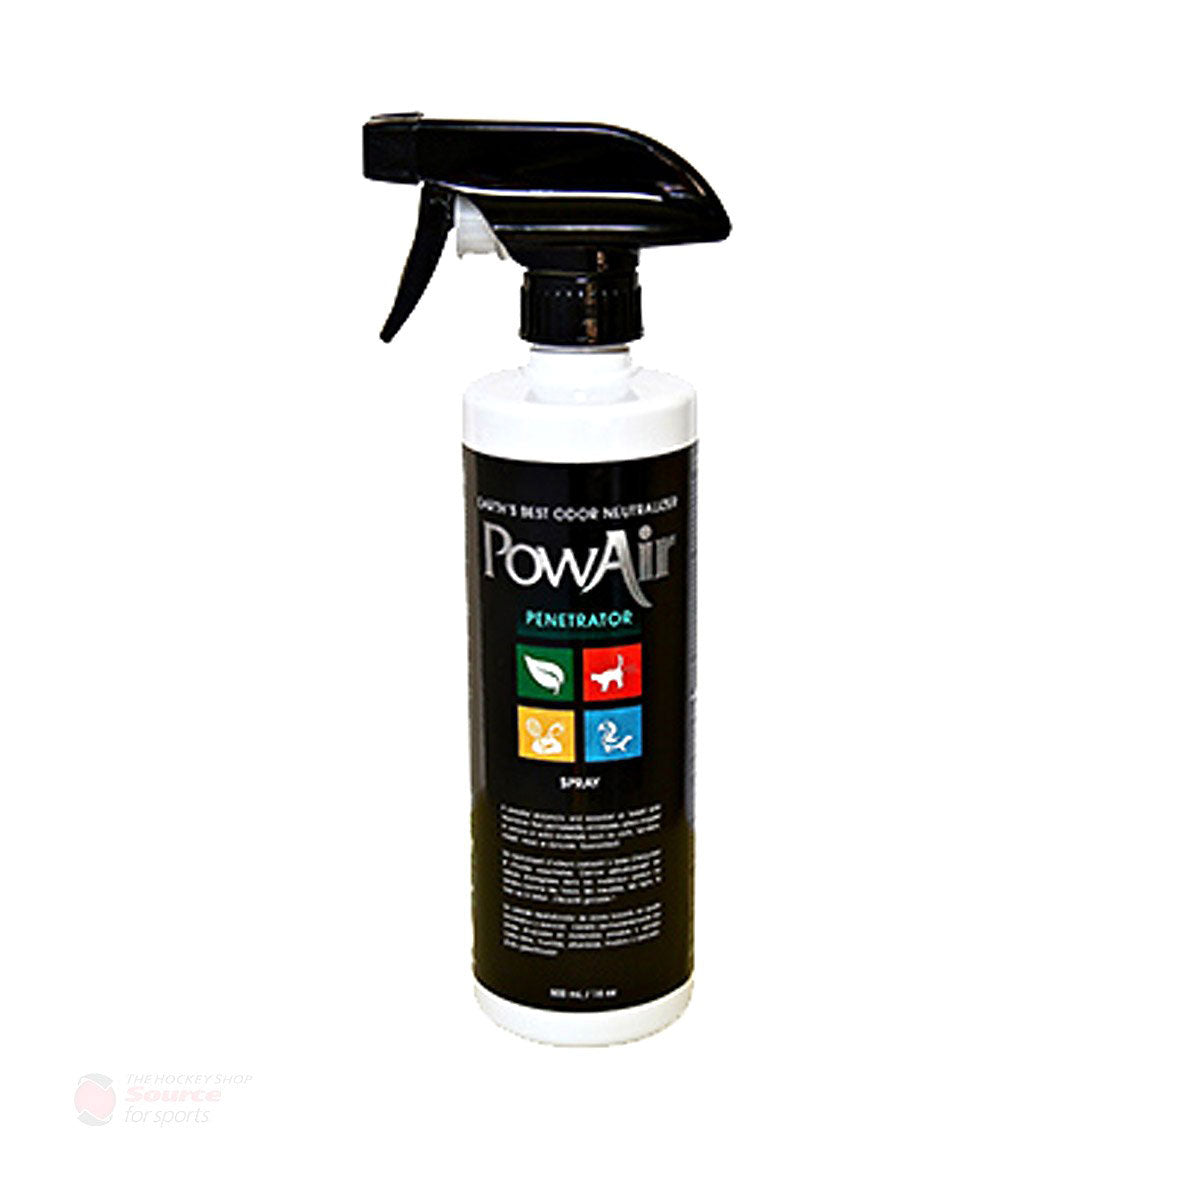 Pow-Air Penetrator Deodorizer Spray